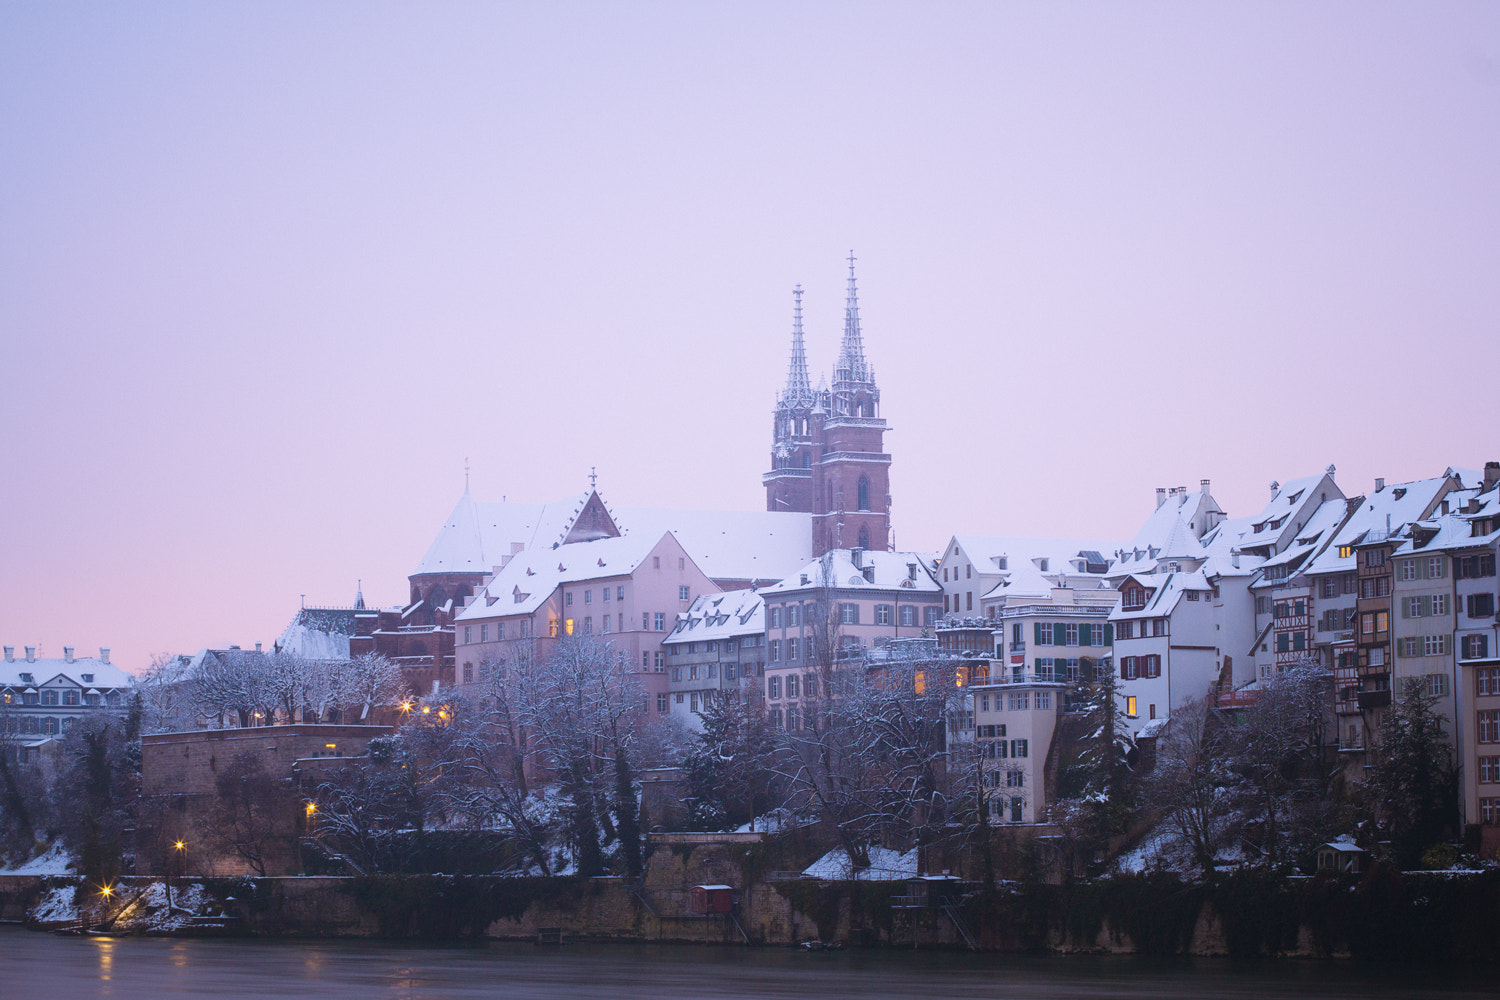 Photograph early sunday morning in basel, december 2012 by Olivia  on 500px